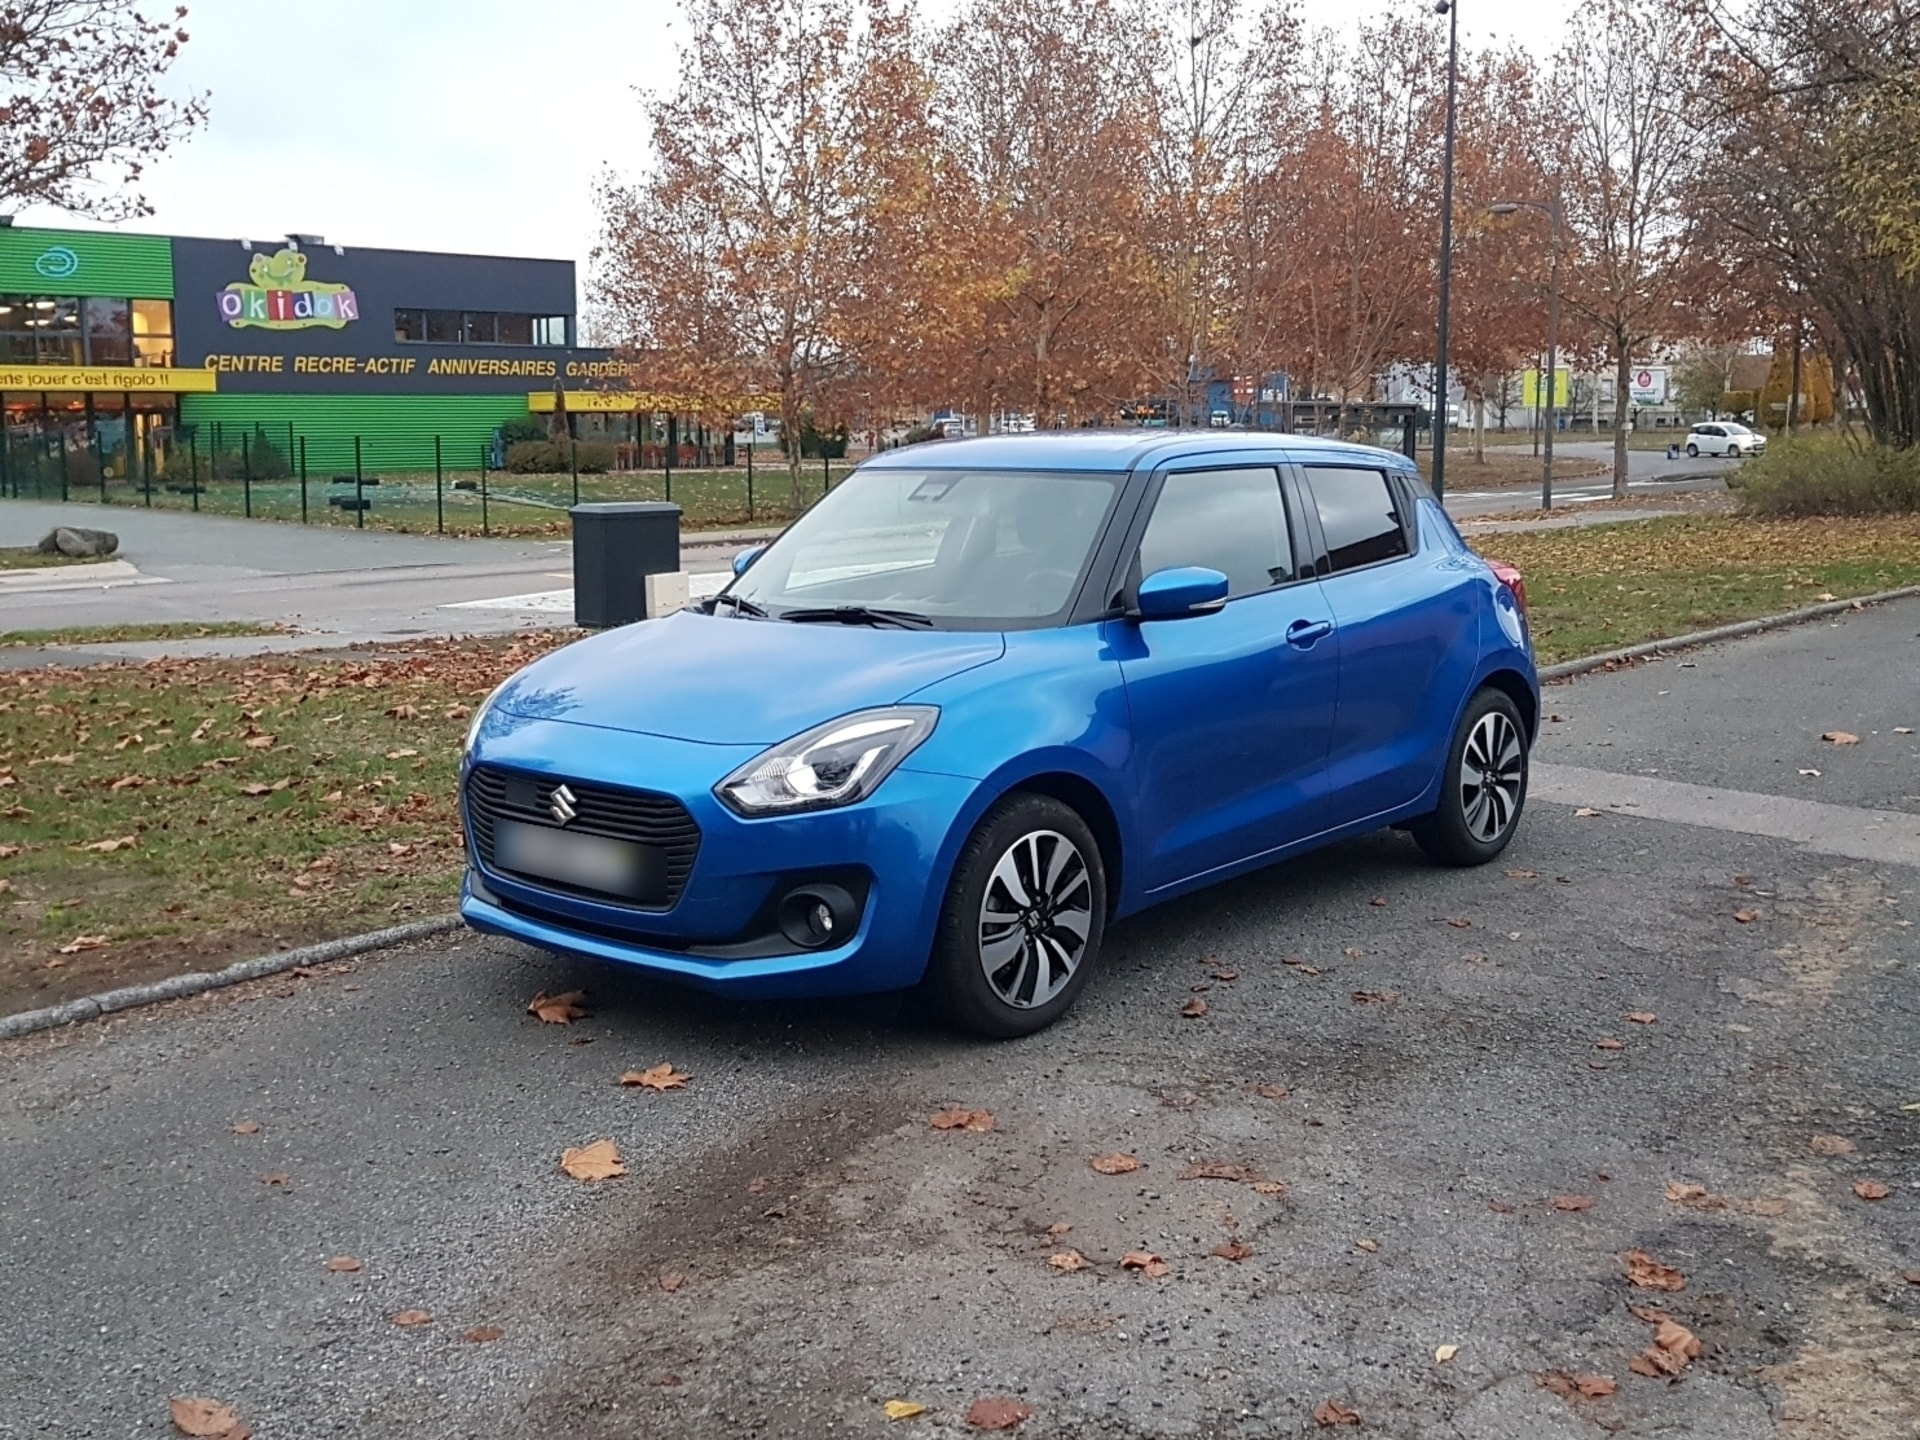 SUZUKI SWIFT 1.0 BOOSTERJET HYBRID 110 SHVS PACK START-STOP - Carverntura